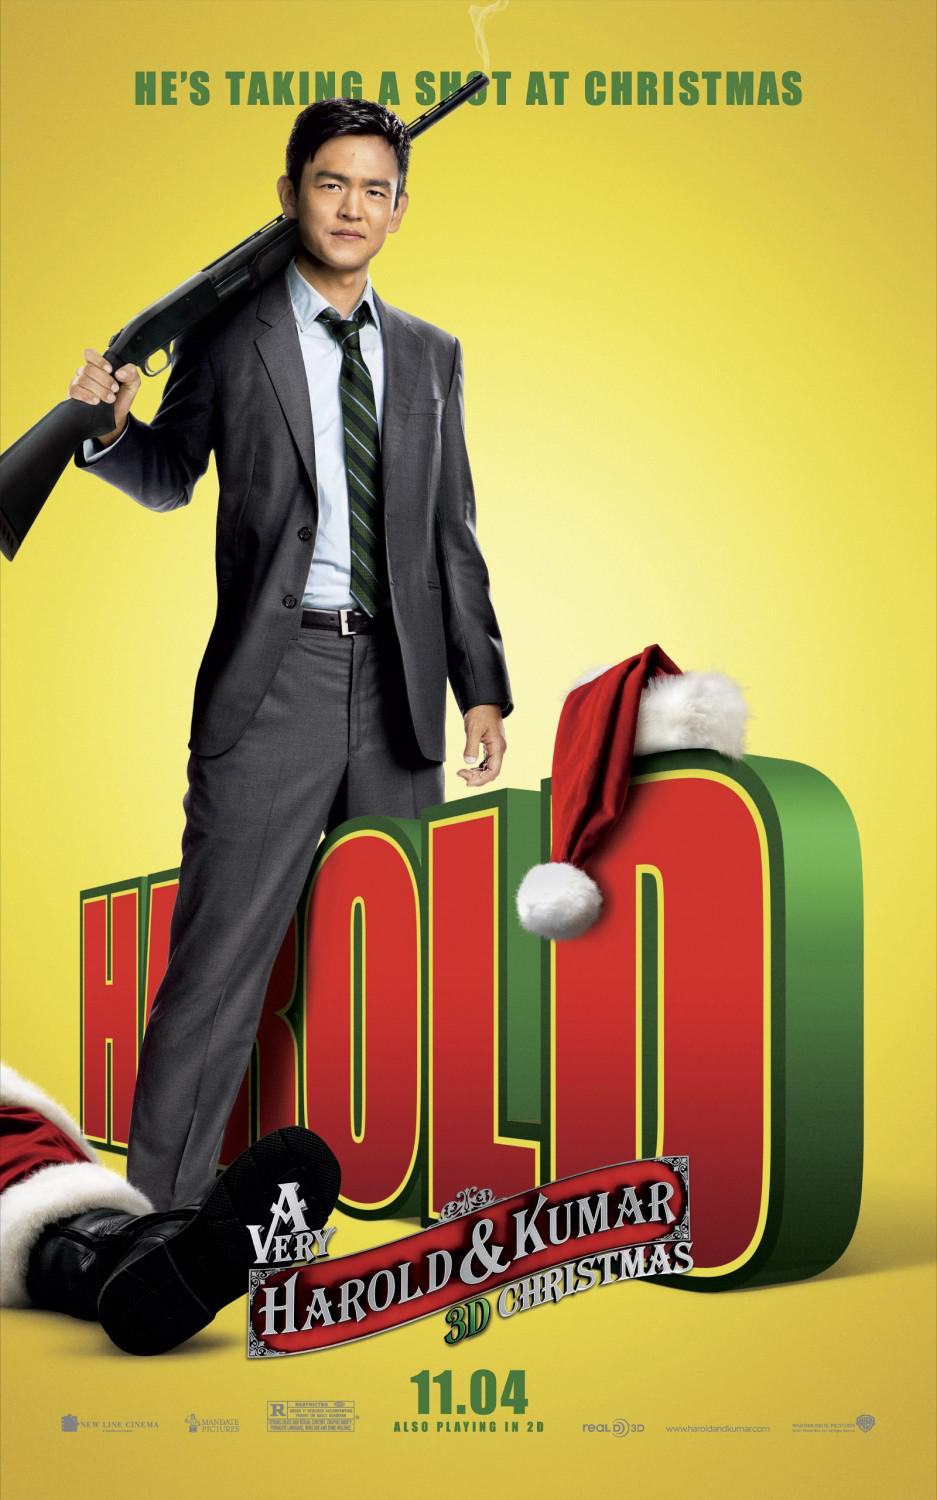 Very Harold and Kumar Christmas - Un Natale da Ricordare - Harold Lee (John Cho) - he's taking a shot at Christmas